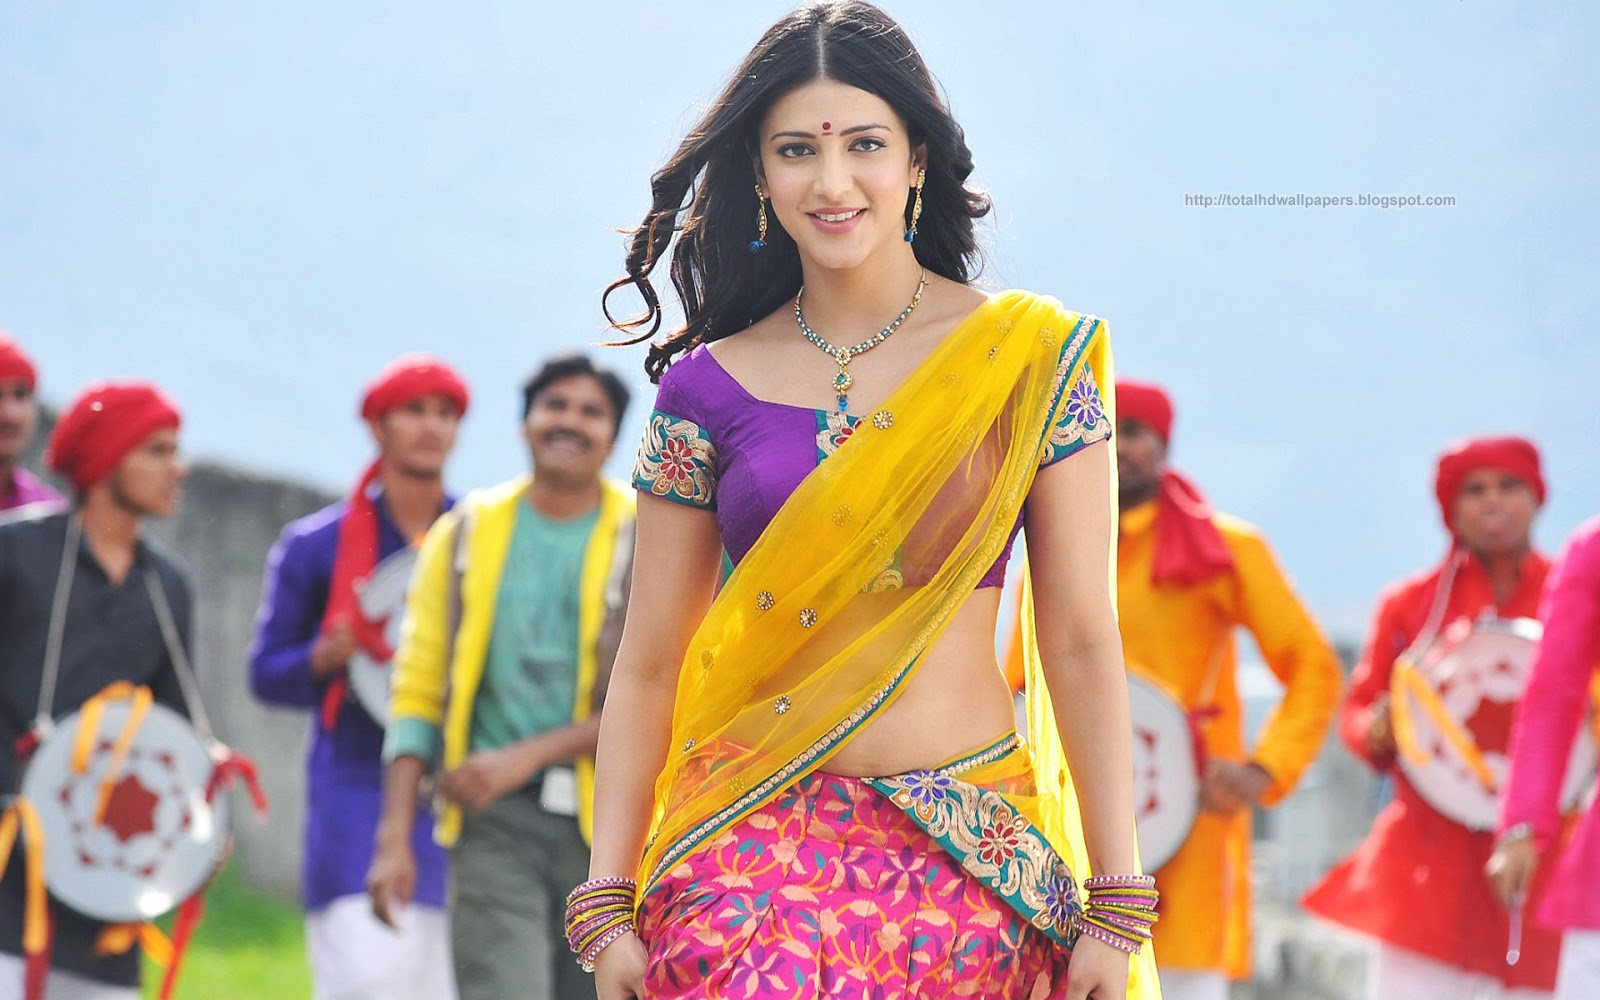 Telugu All Heroines Pictures Wallpapers: Wallpapers Heroine Telugu (40 Wallpapers)